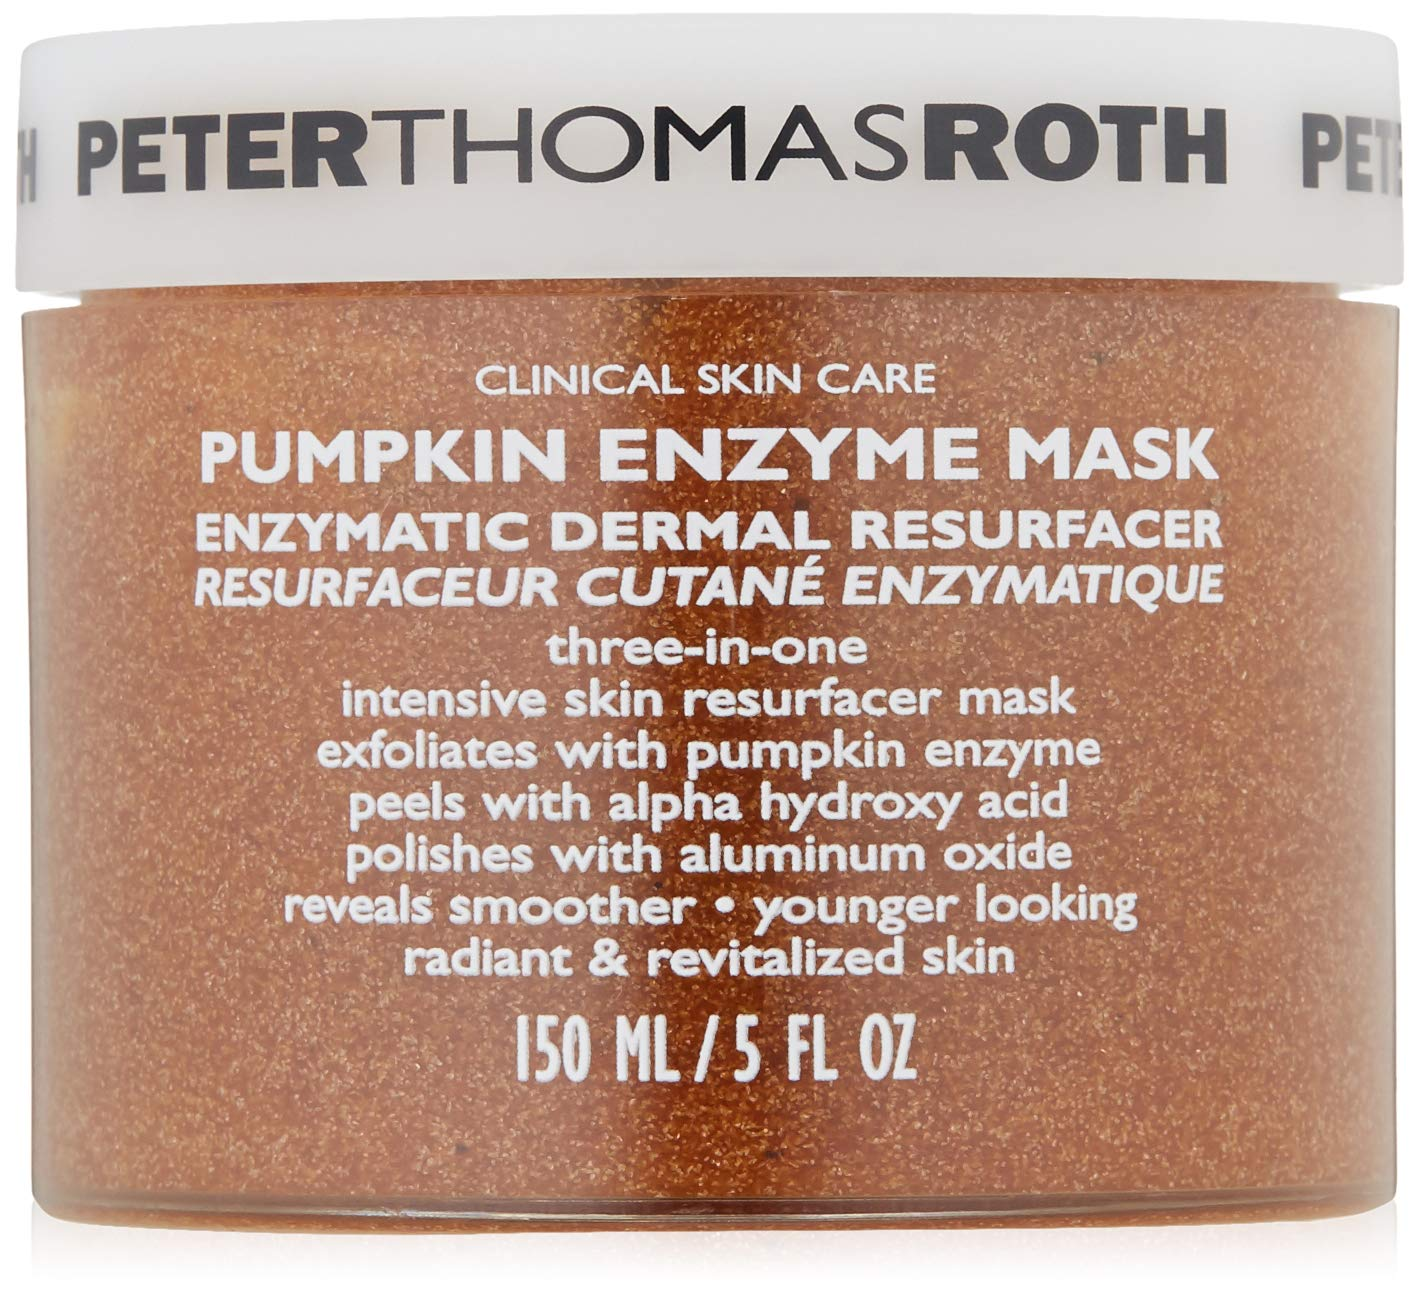 Peter Thomas Roth Pumpkin Enzyme Mask, 5 fl. oz. by Peter Thomas Roth (Image #1)